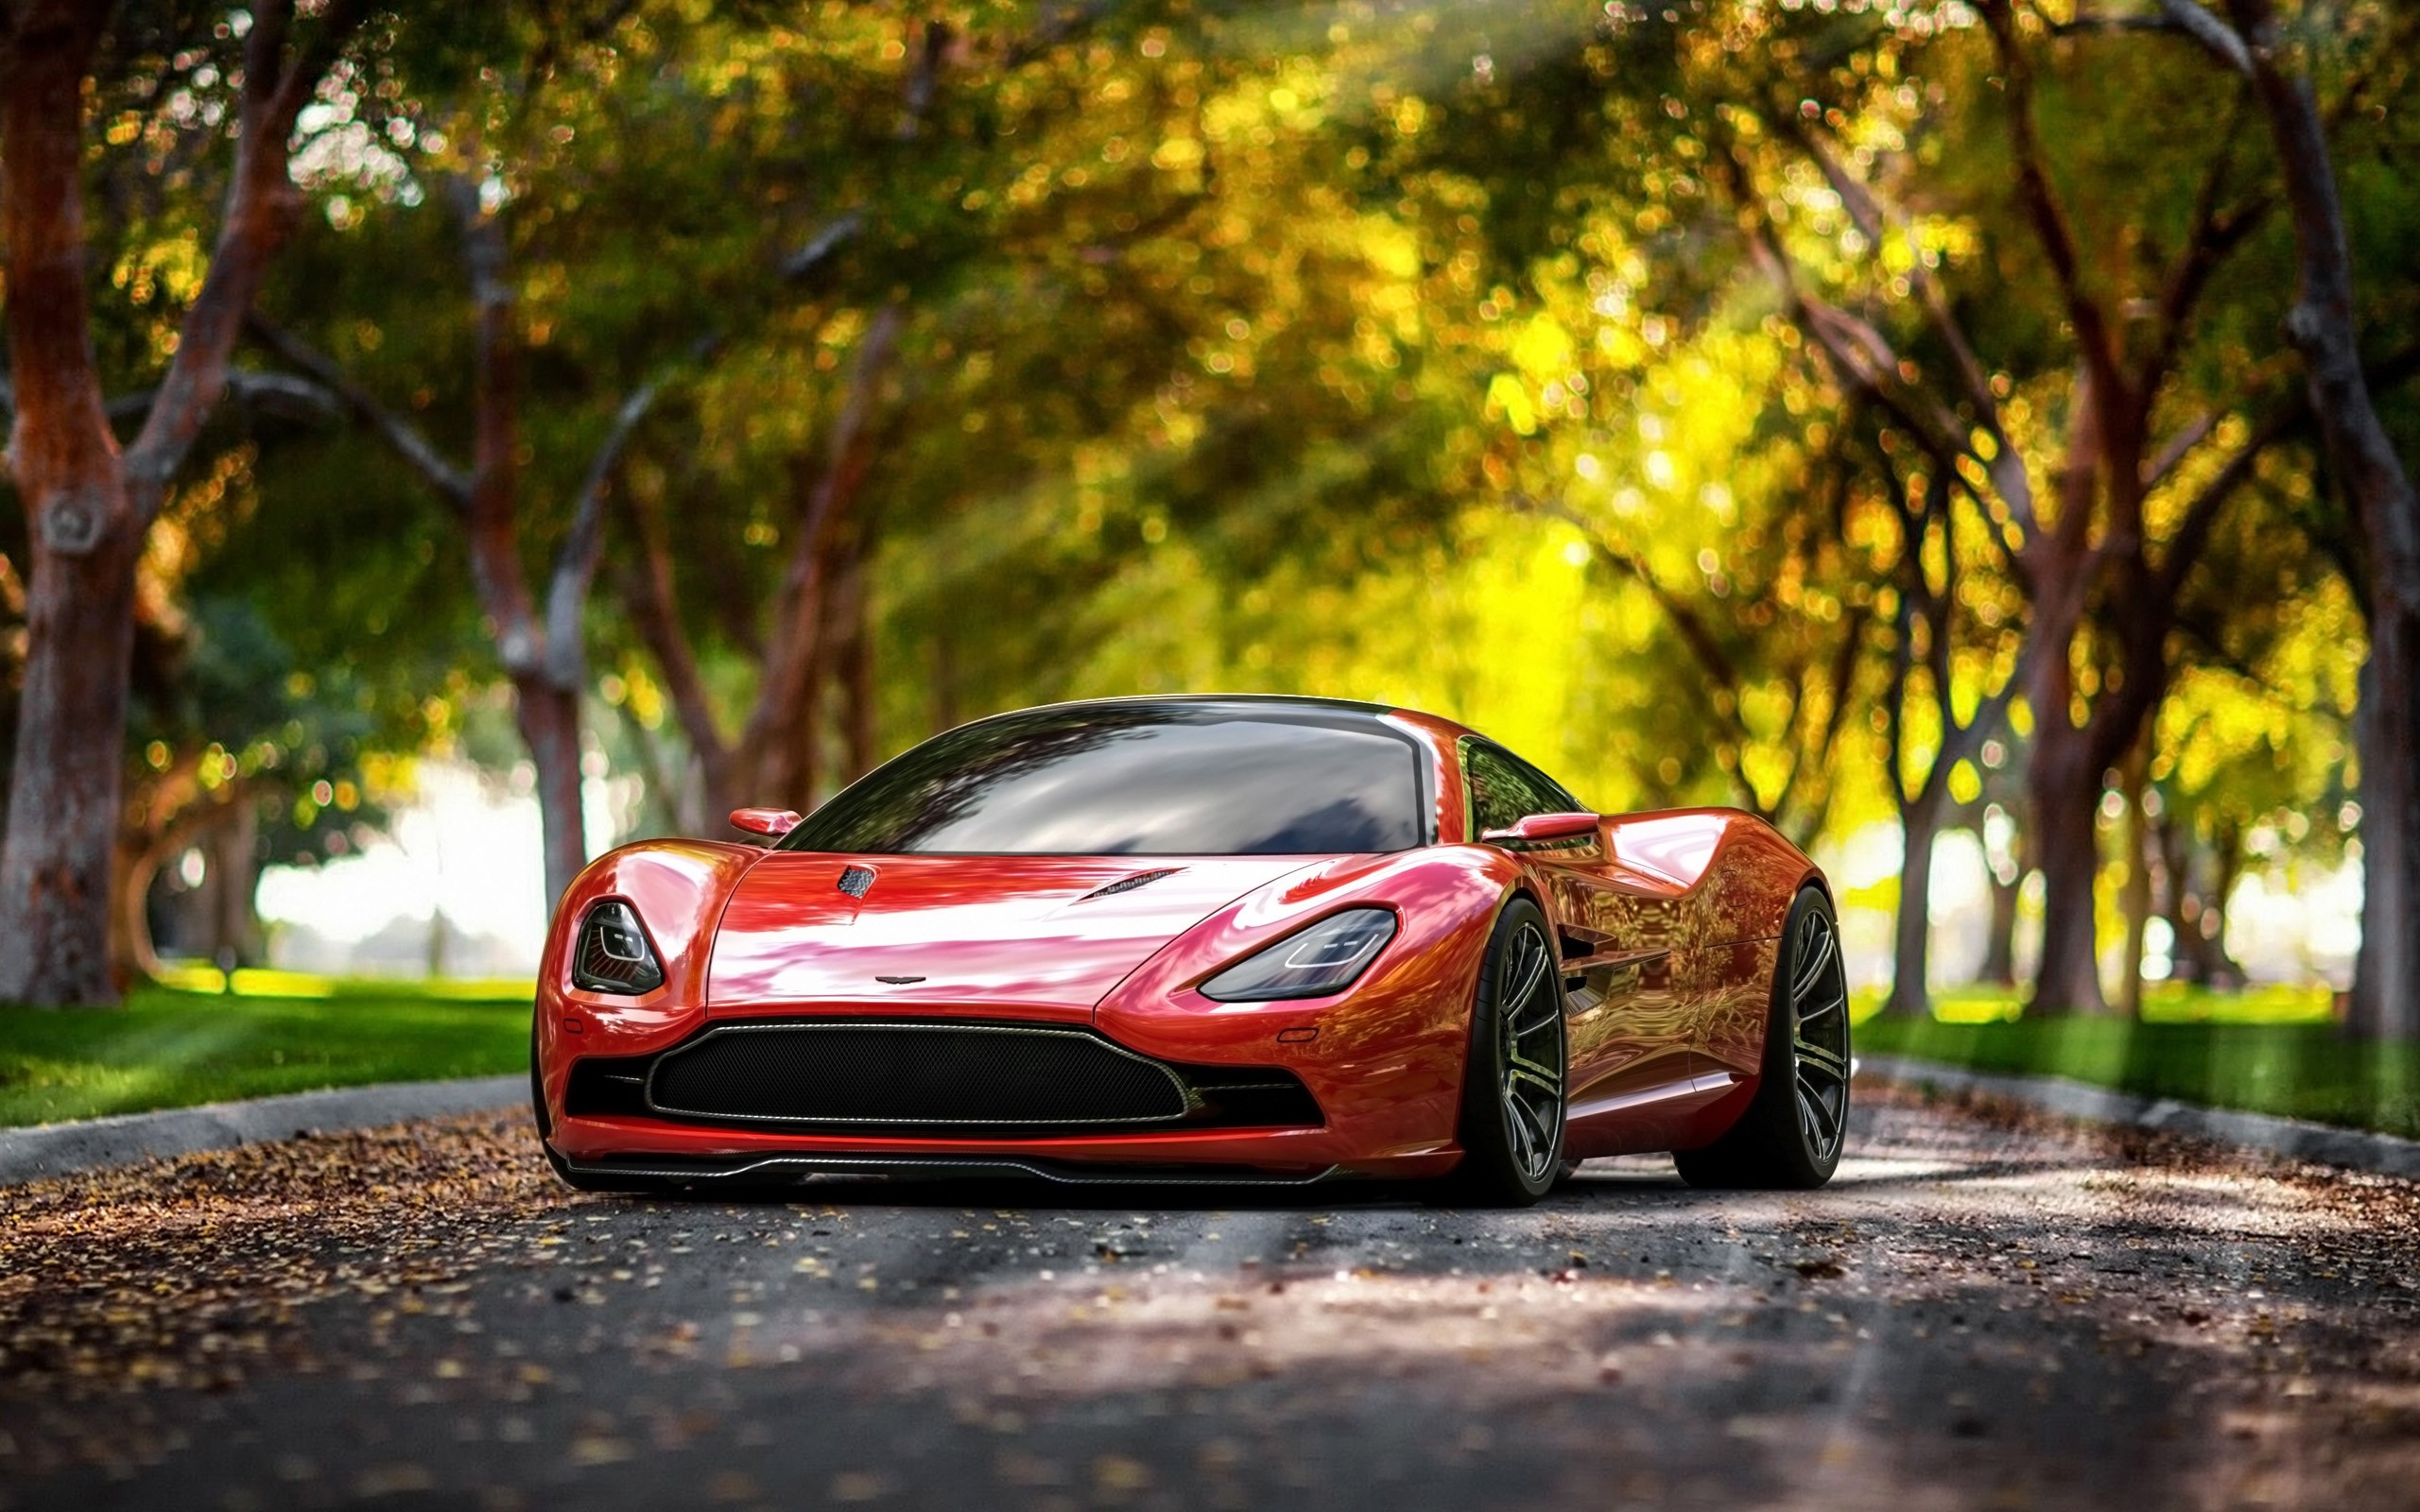 ... Aston Martin, Sports Car. Original Resolution: 2560x1600